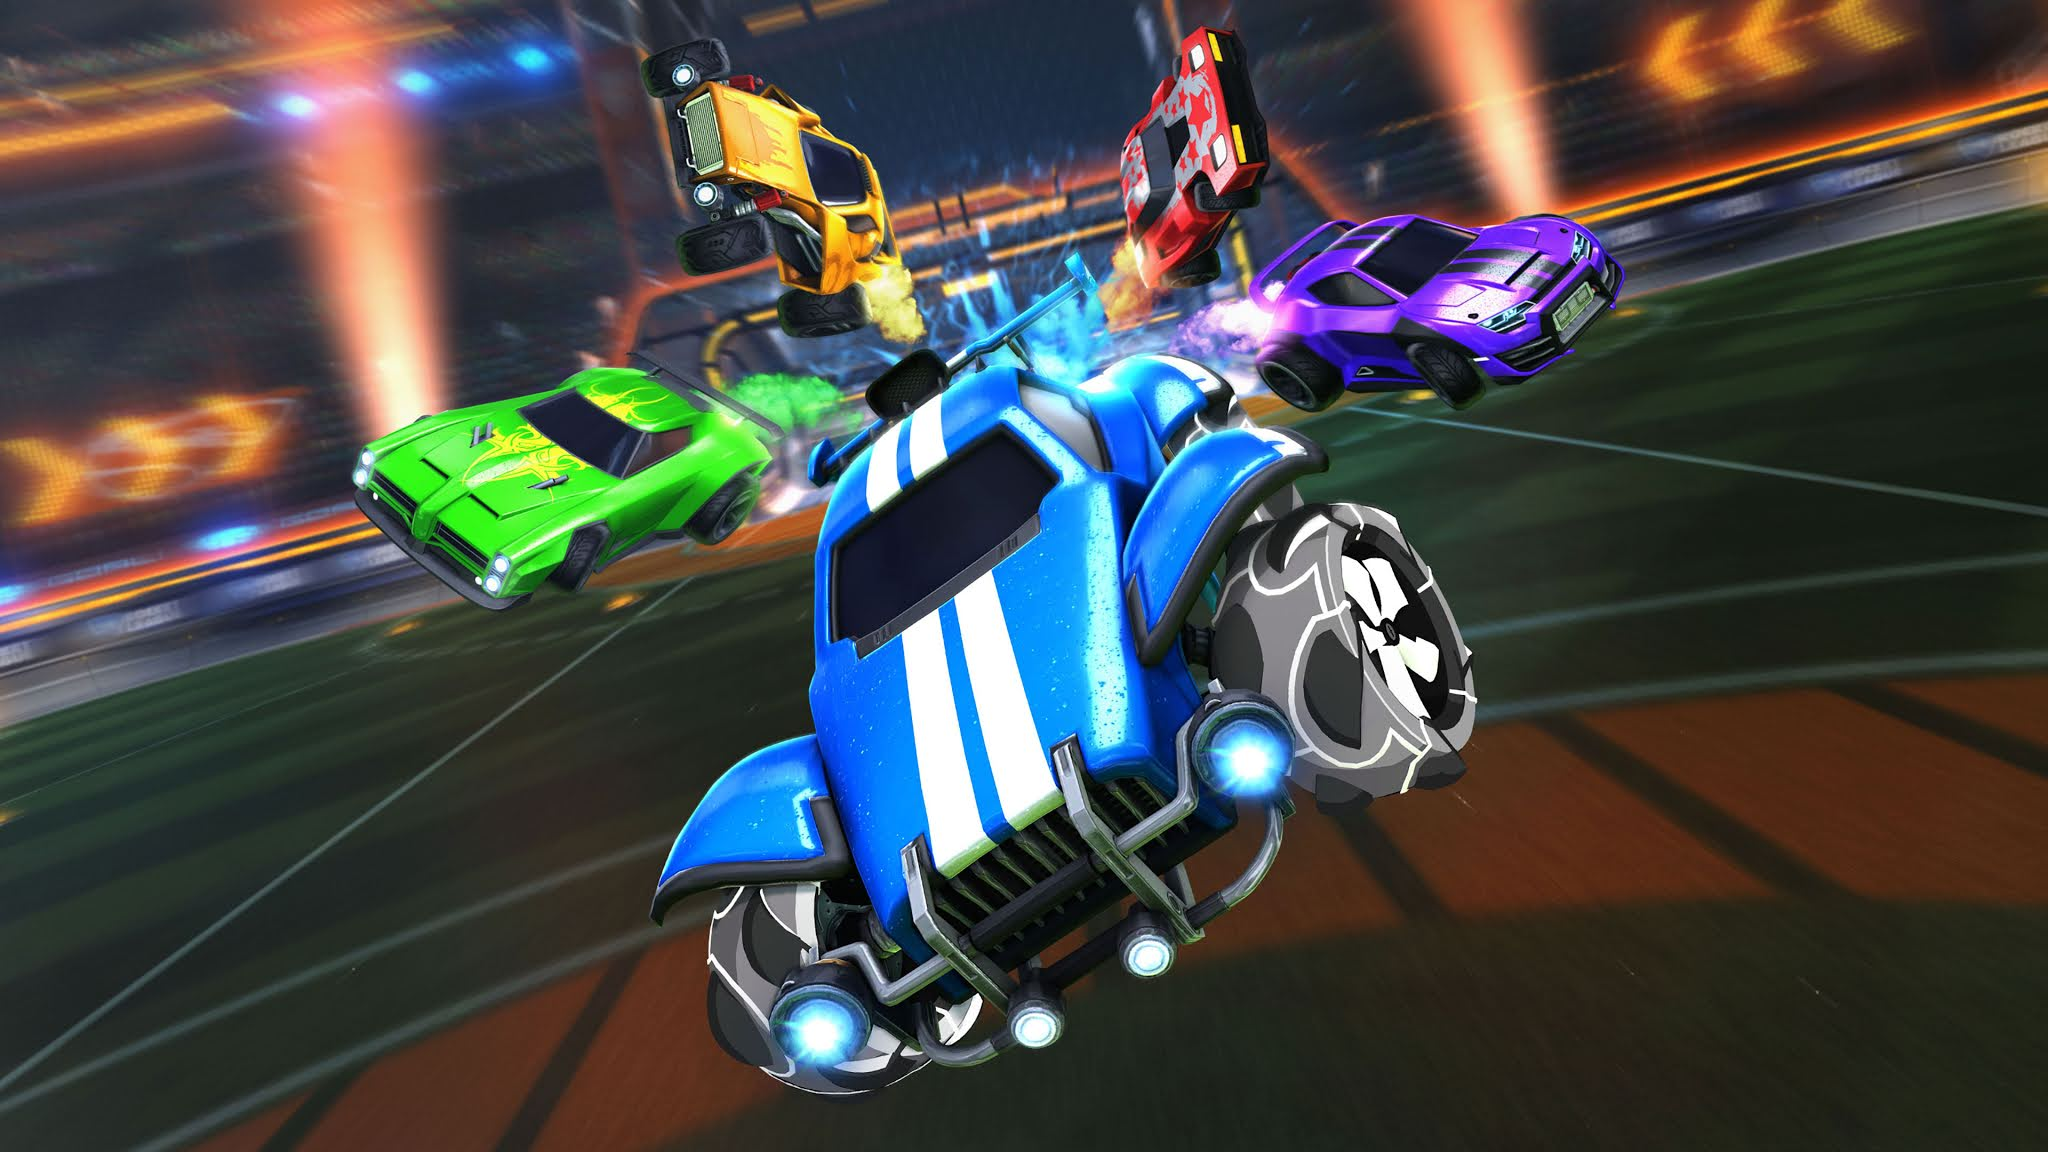 ROCKET LEAGUE: HOW TO ACTIVATE VOICE CHAT IN CROSS PLAY